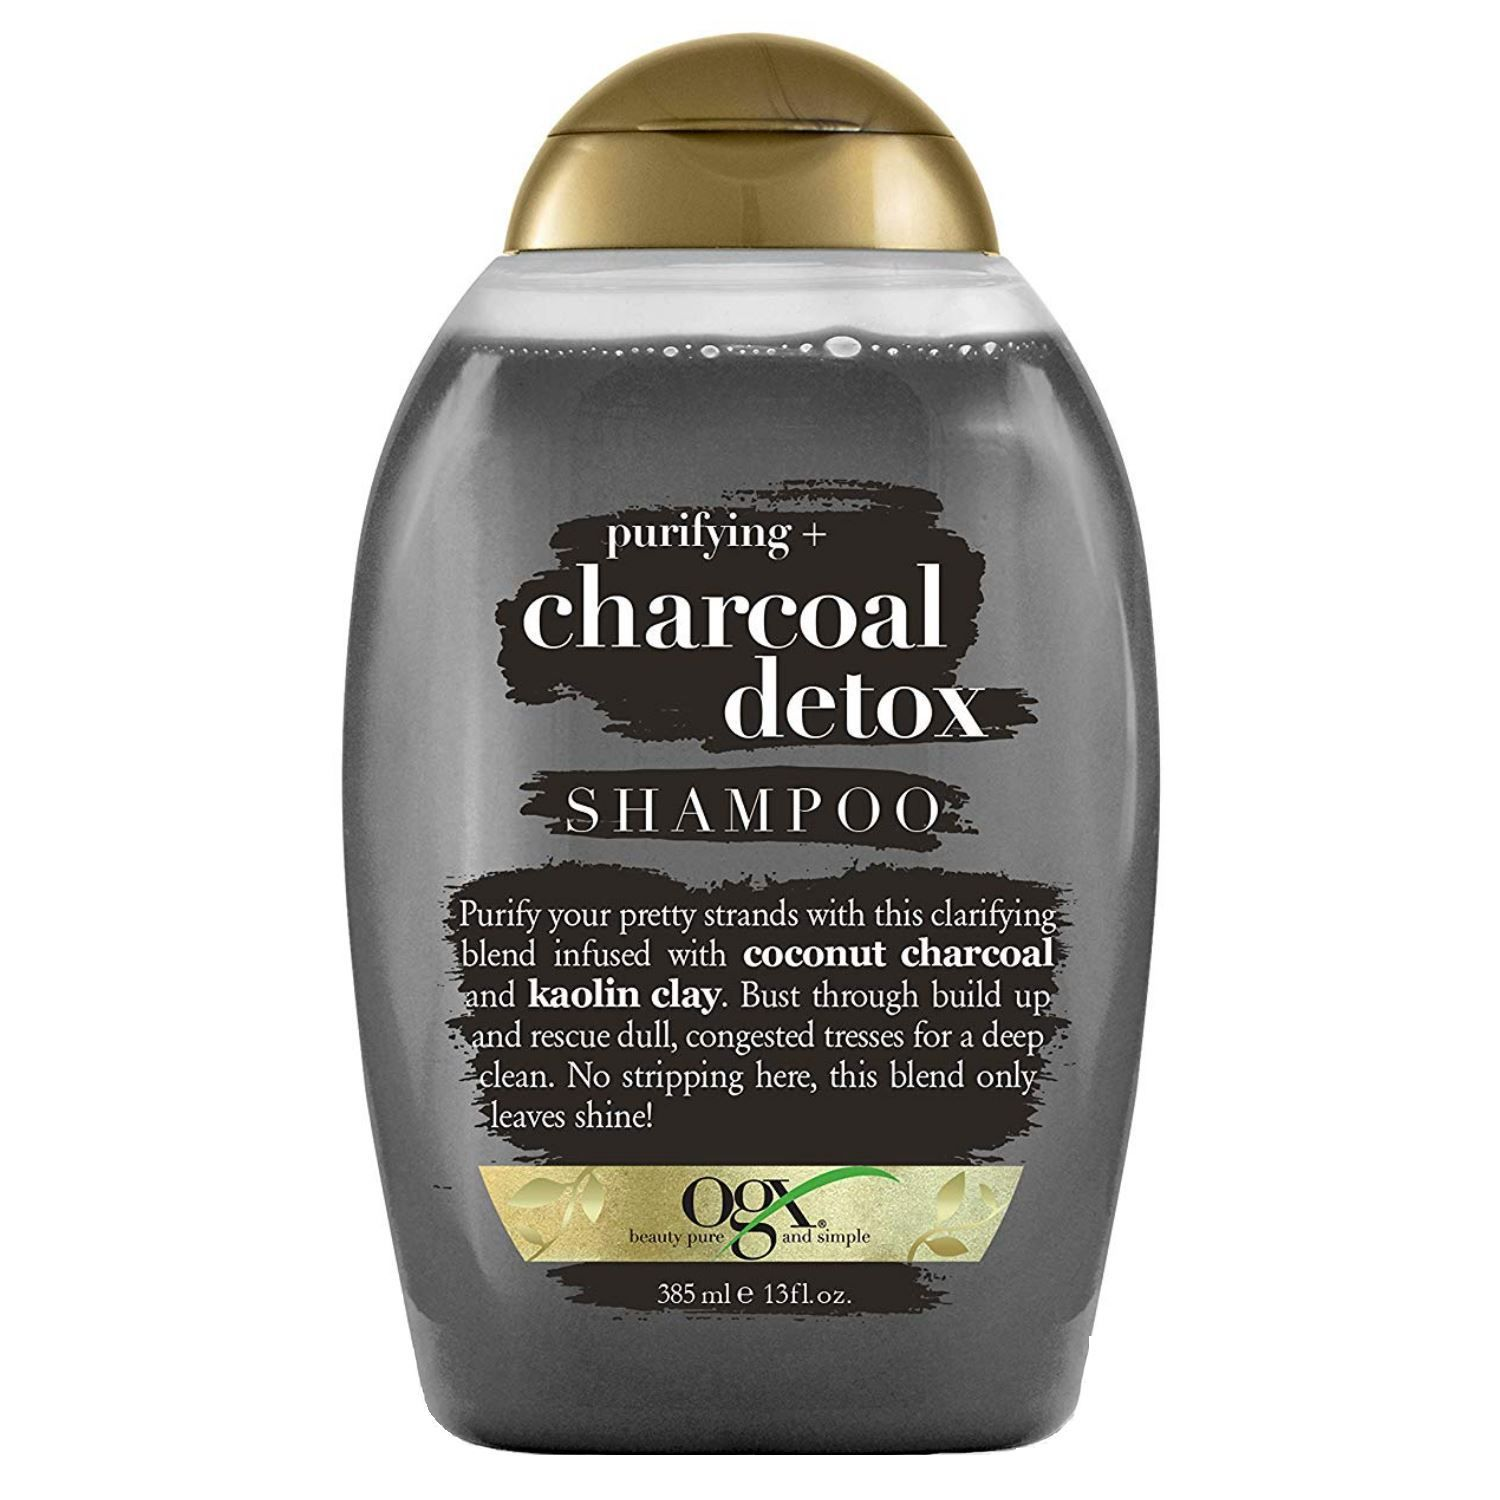 Purifying Charcoal Detox Shampoo